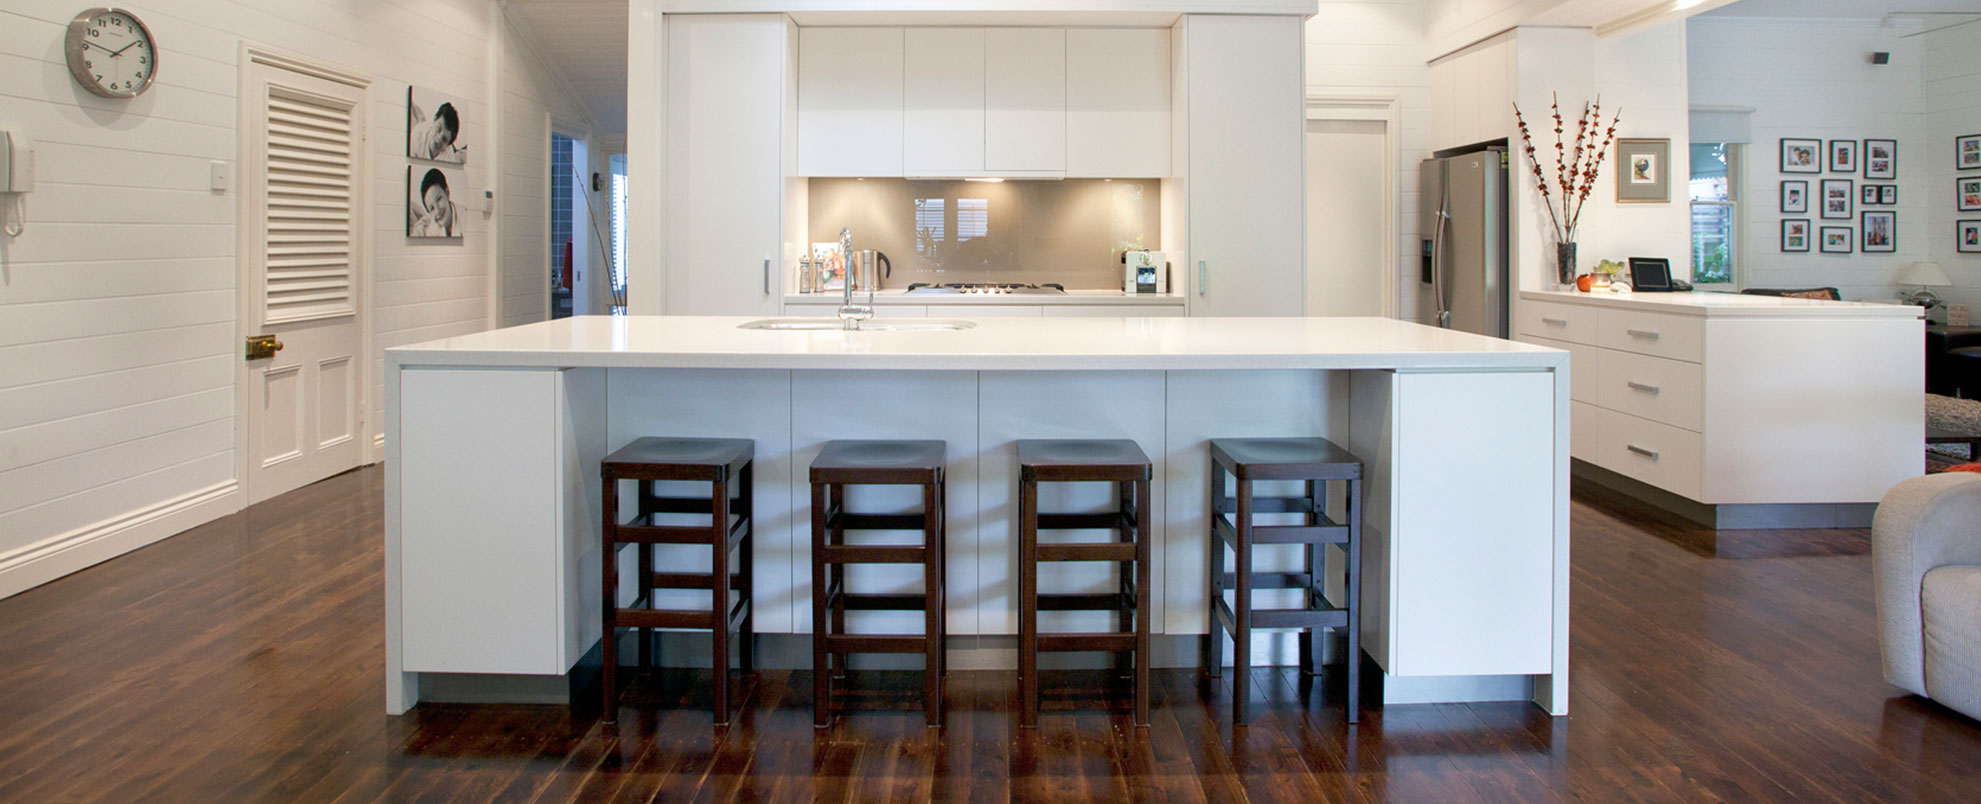 Custom made joinery brisbane interior joinery custom for Kitchens by design